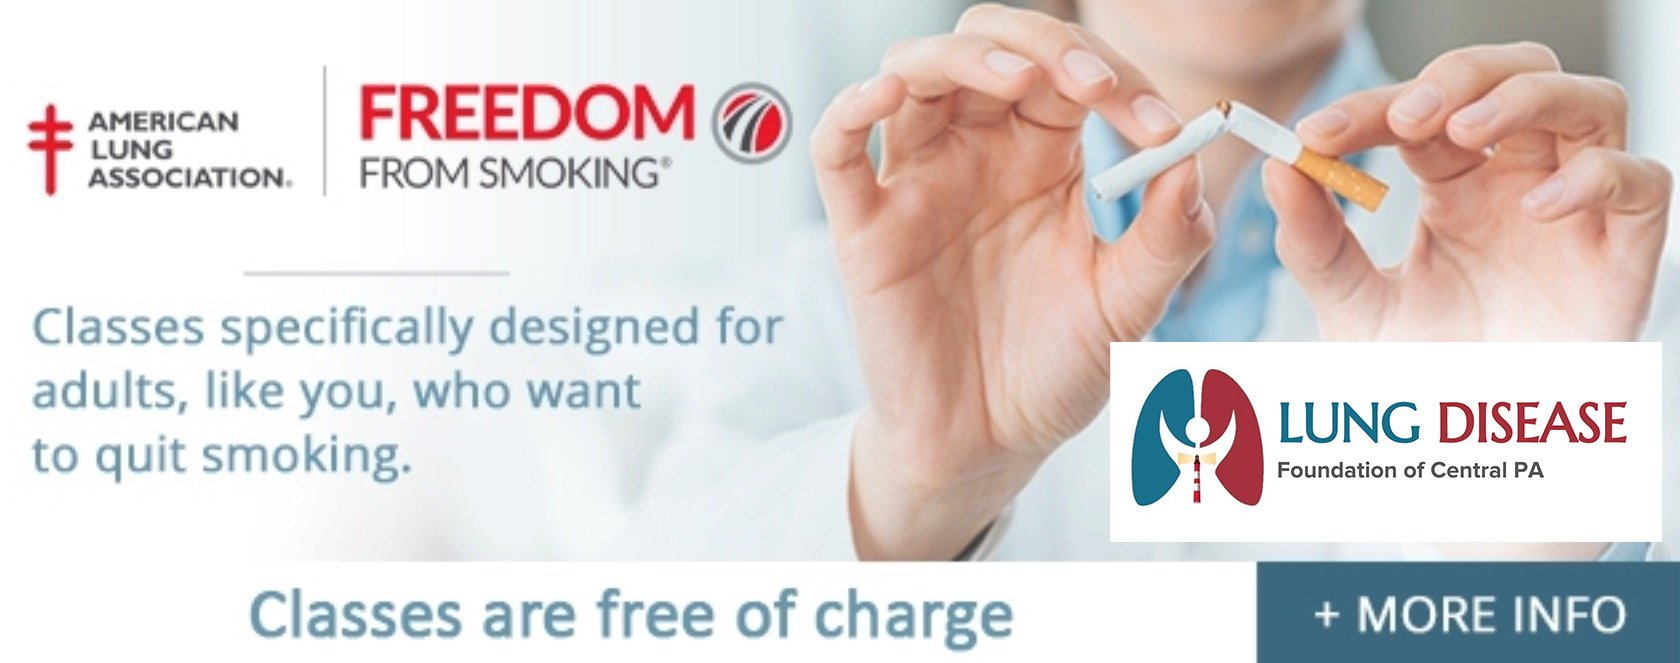 Freedom from smoking banner